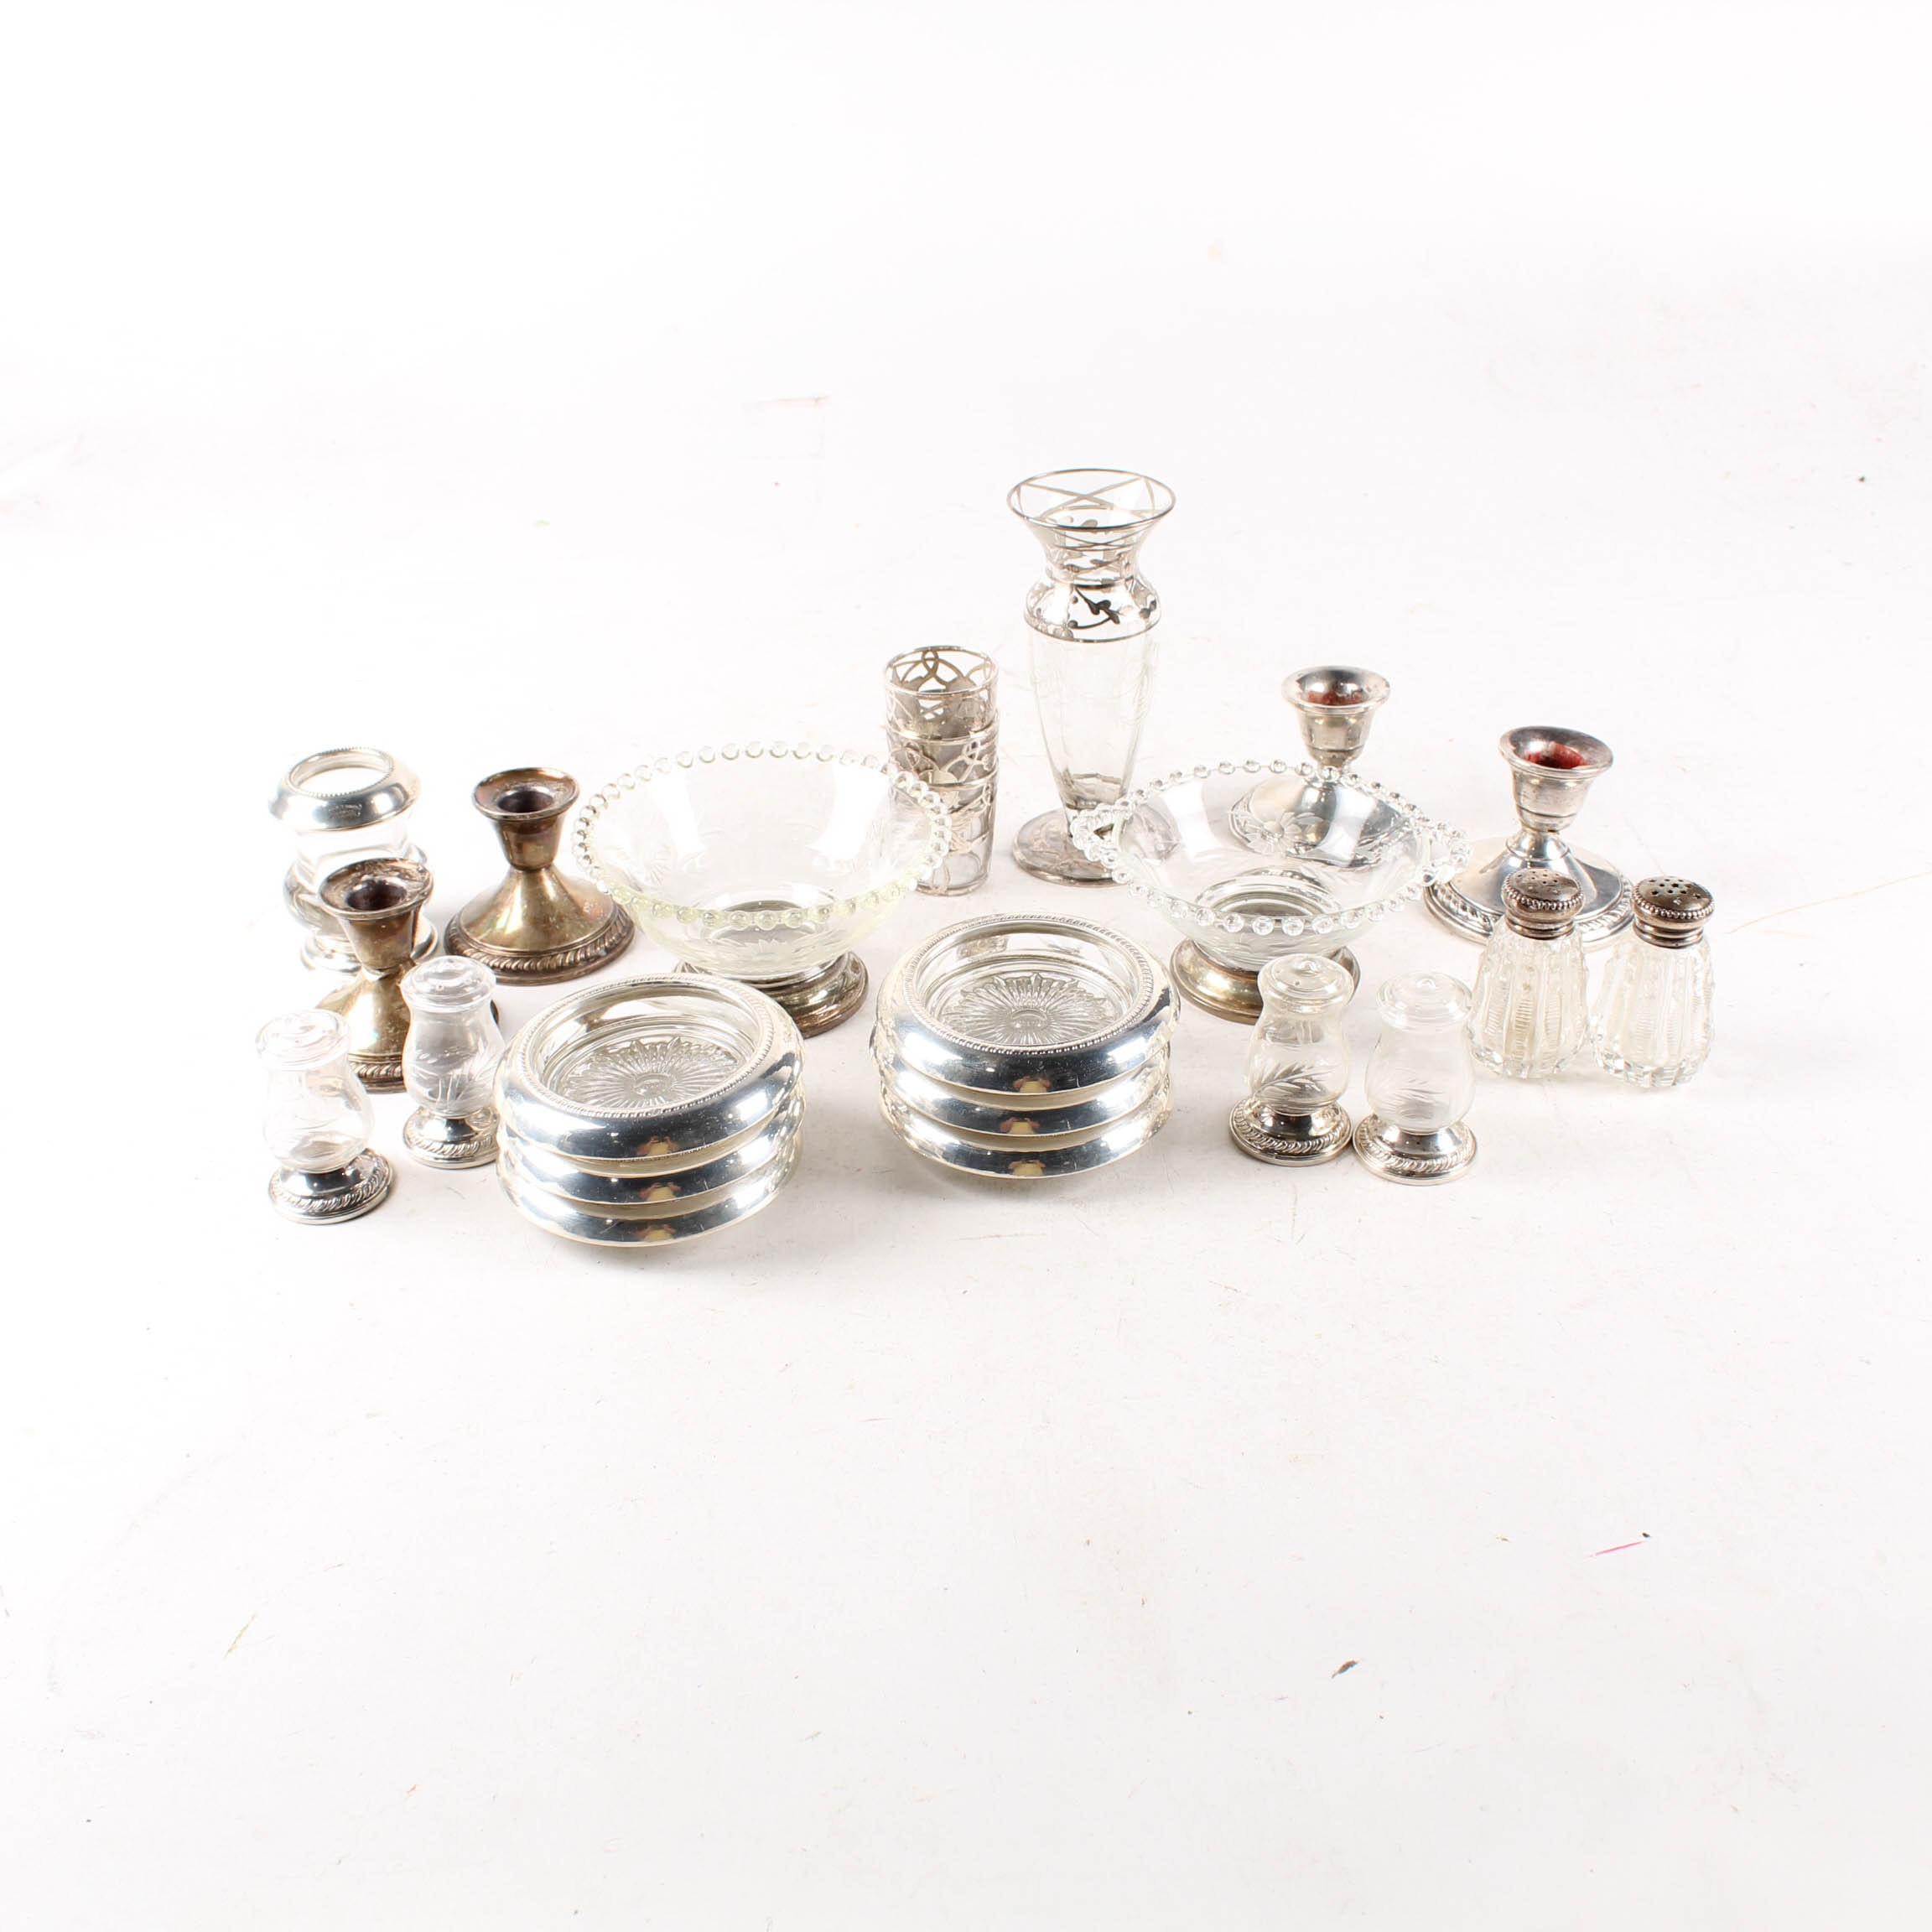 Weighted Sterling Silver and Silver Overlay Tableware